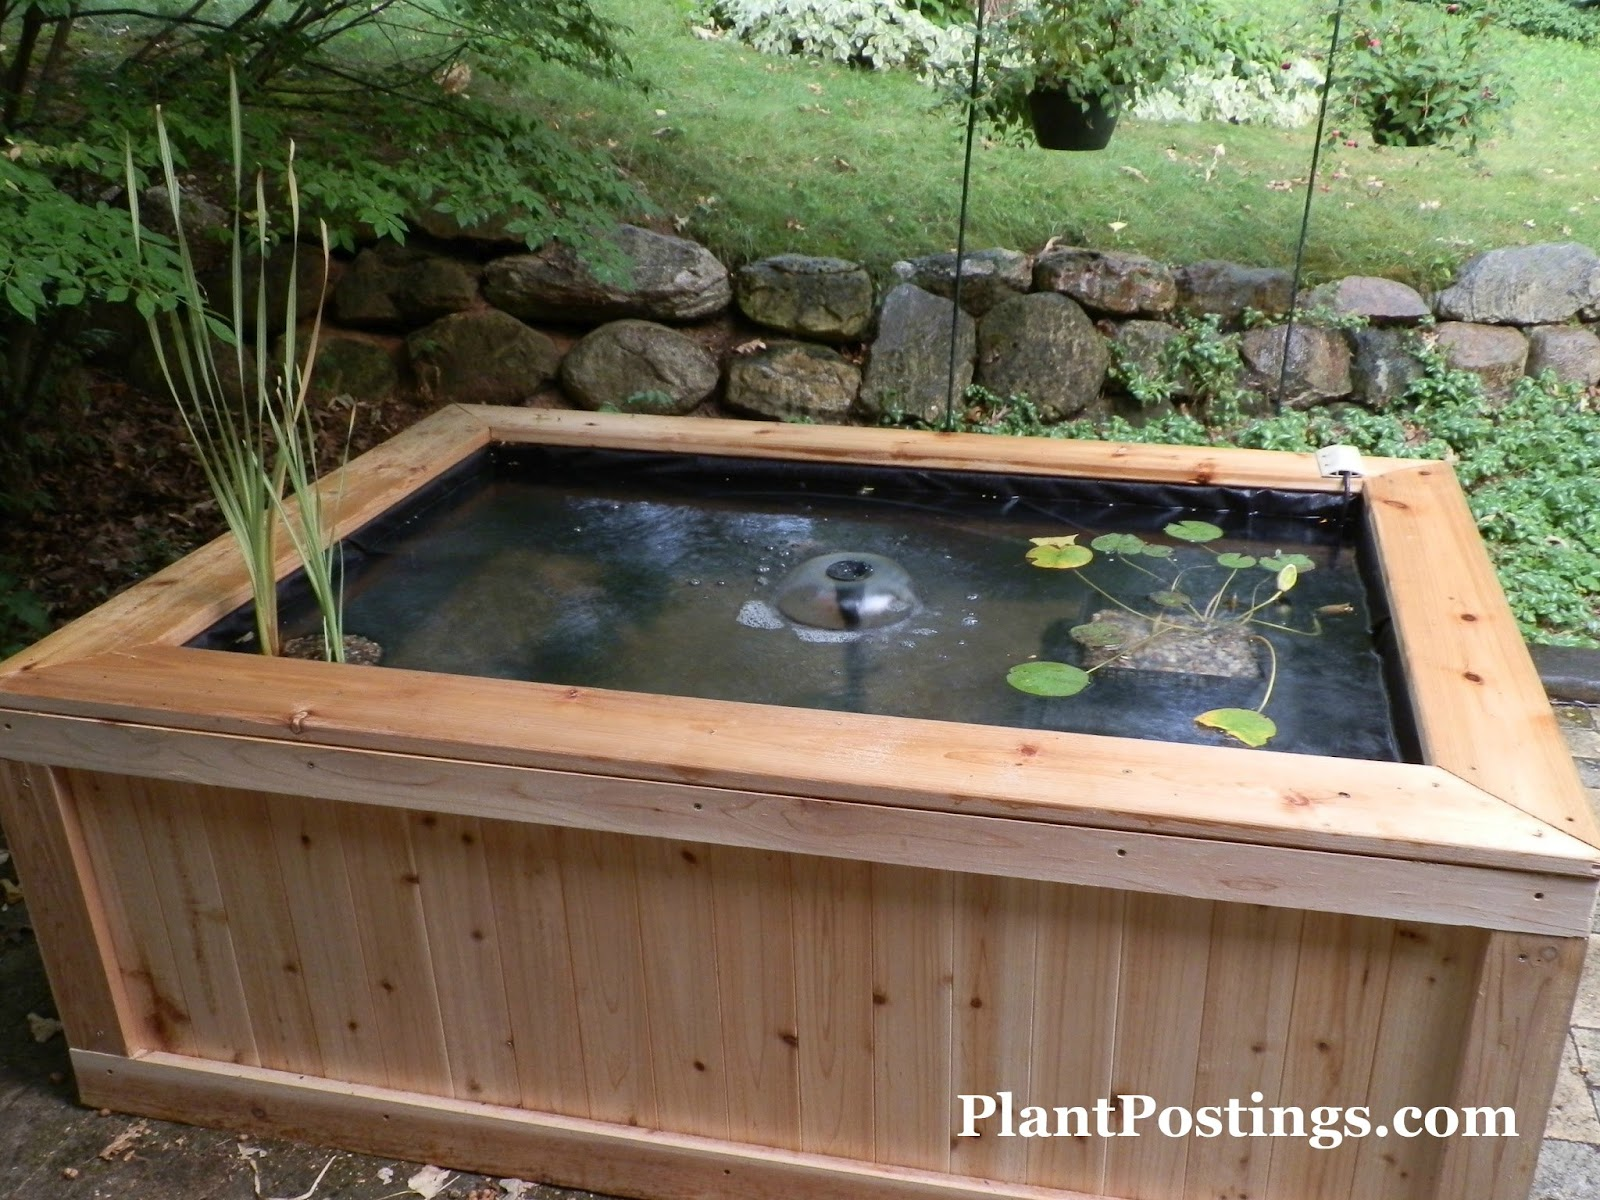 Plantpostings how to make an above ground pond Outdoor pond fish for sale